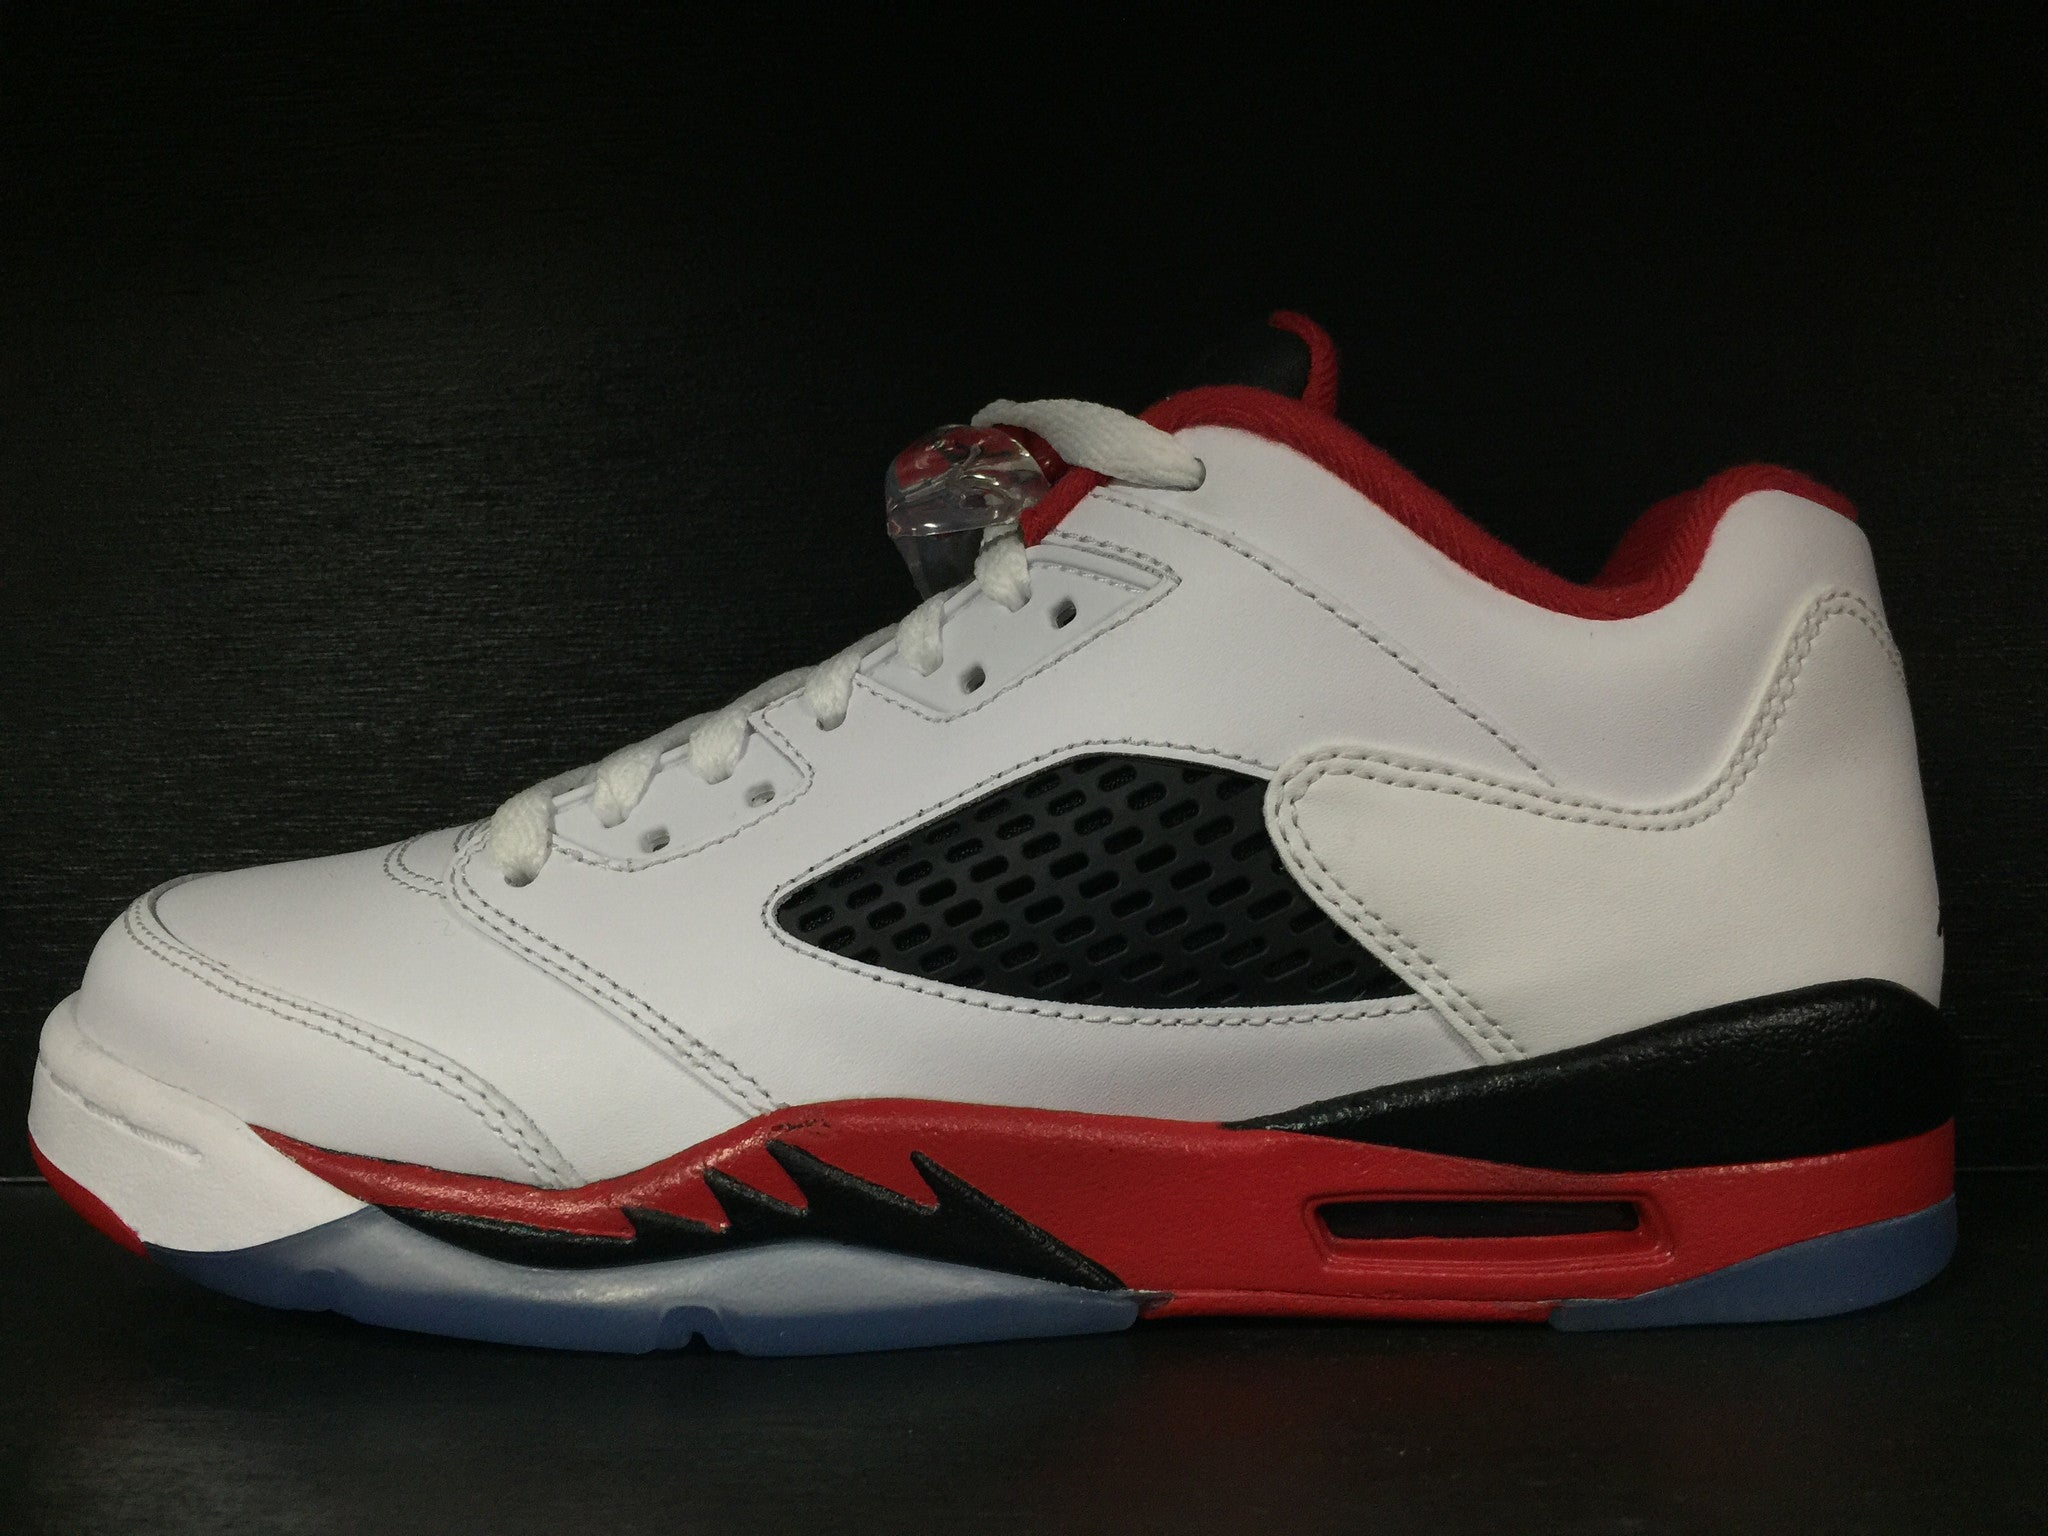 Air Jordan 5 Retro Low 'Fire Red' GS